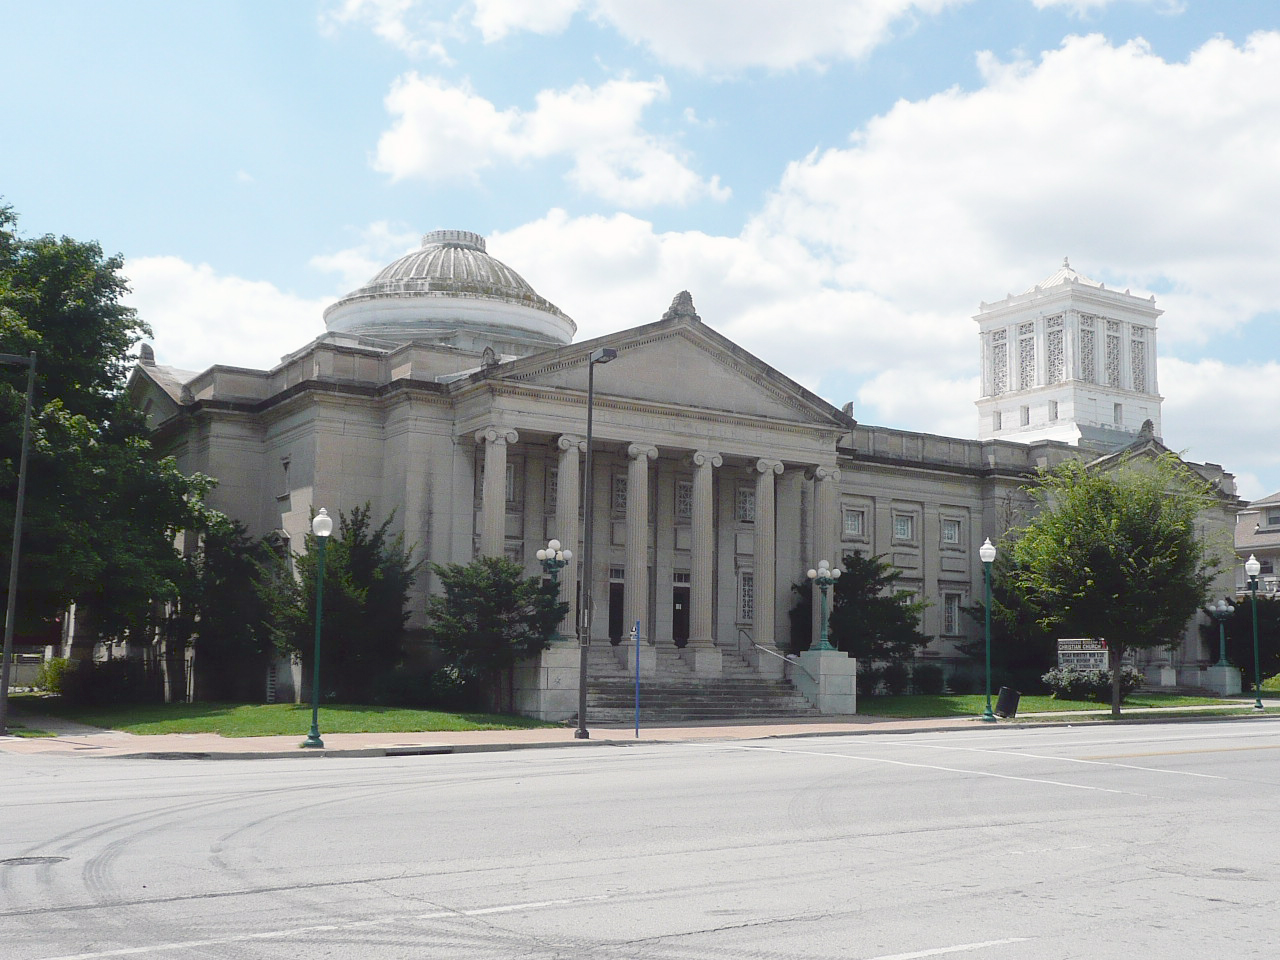 The Beaux-Arts style IBCC was constructed in 1904, with later additions in 1909 and 1919. Image obtained from Wikimedia.